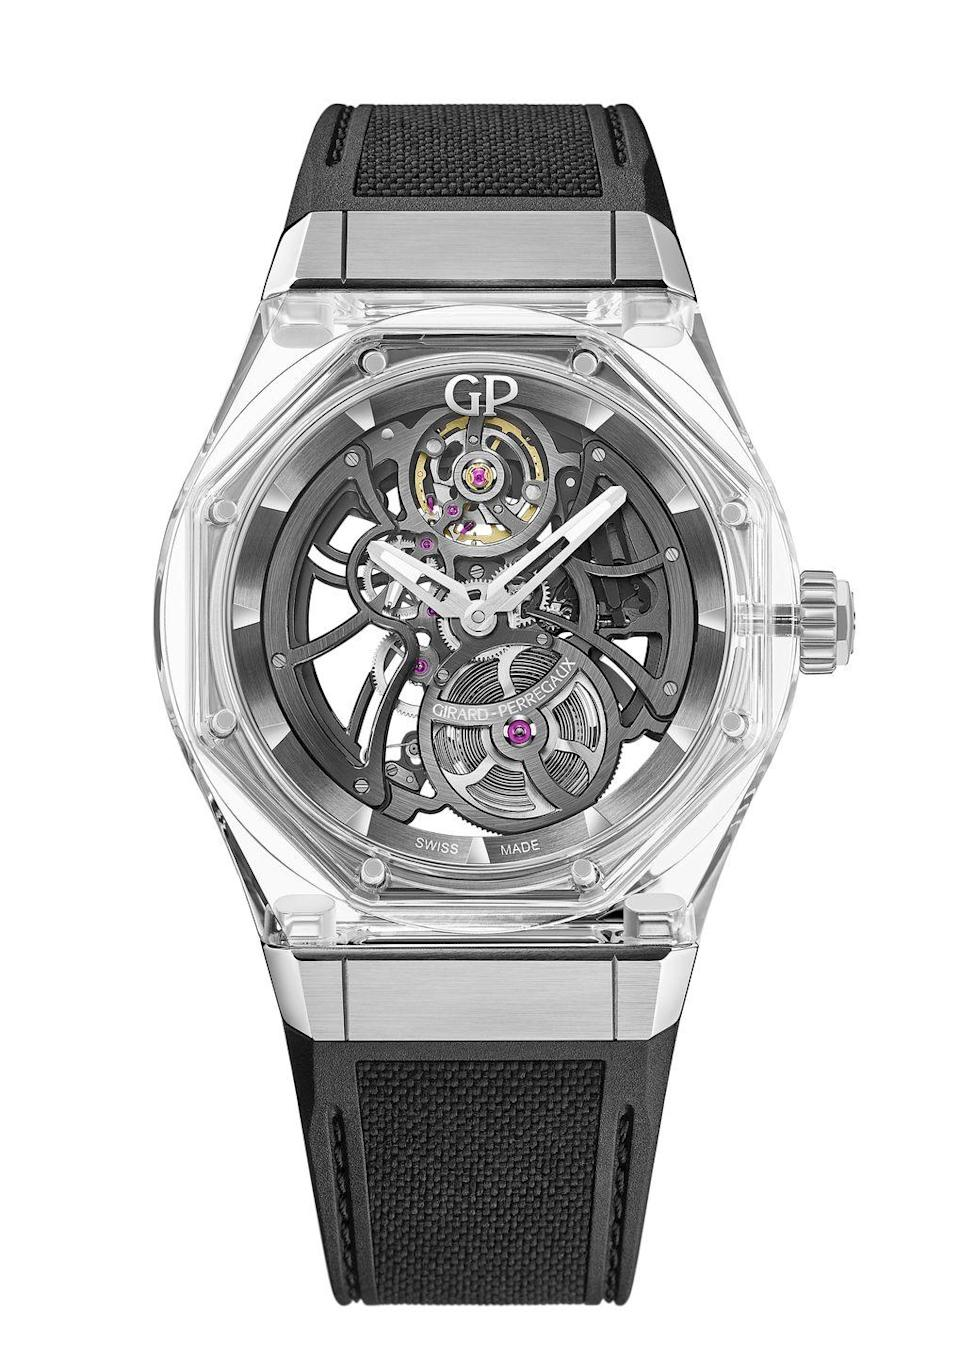 "<p>The latest evolution in the house's signature Laureato collection features a crystalline sapphire and titanium case. The transparent case lets in the light and allows for a 360-degree view of the complicated movement, and the titanium keeps it as light as a feather.<em>($84,700)</em></p><p><a class=""link rapid-noclick-resp"" href=""https://www.girard-perregaux.com/en/laureato"" rel=""nofollow noopener"" target=""_blank"" data-ylk=""slk:Learn More"">Learn More</a></p>"